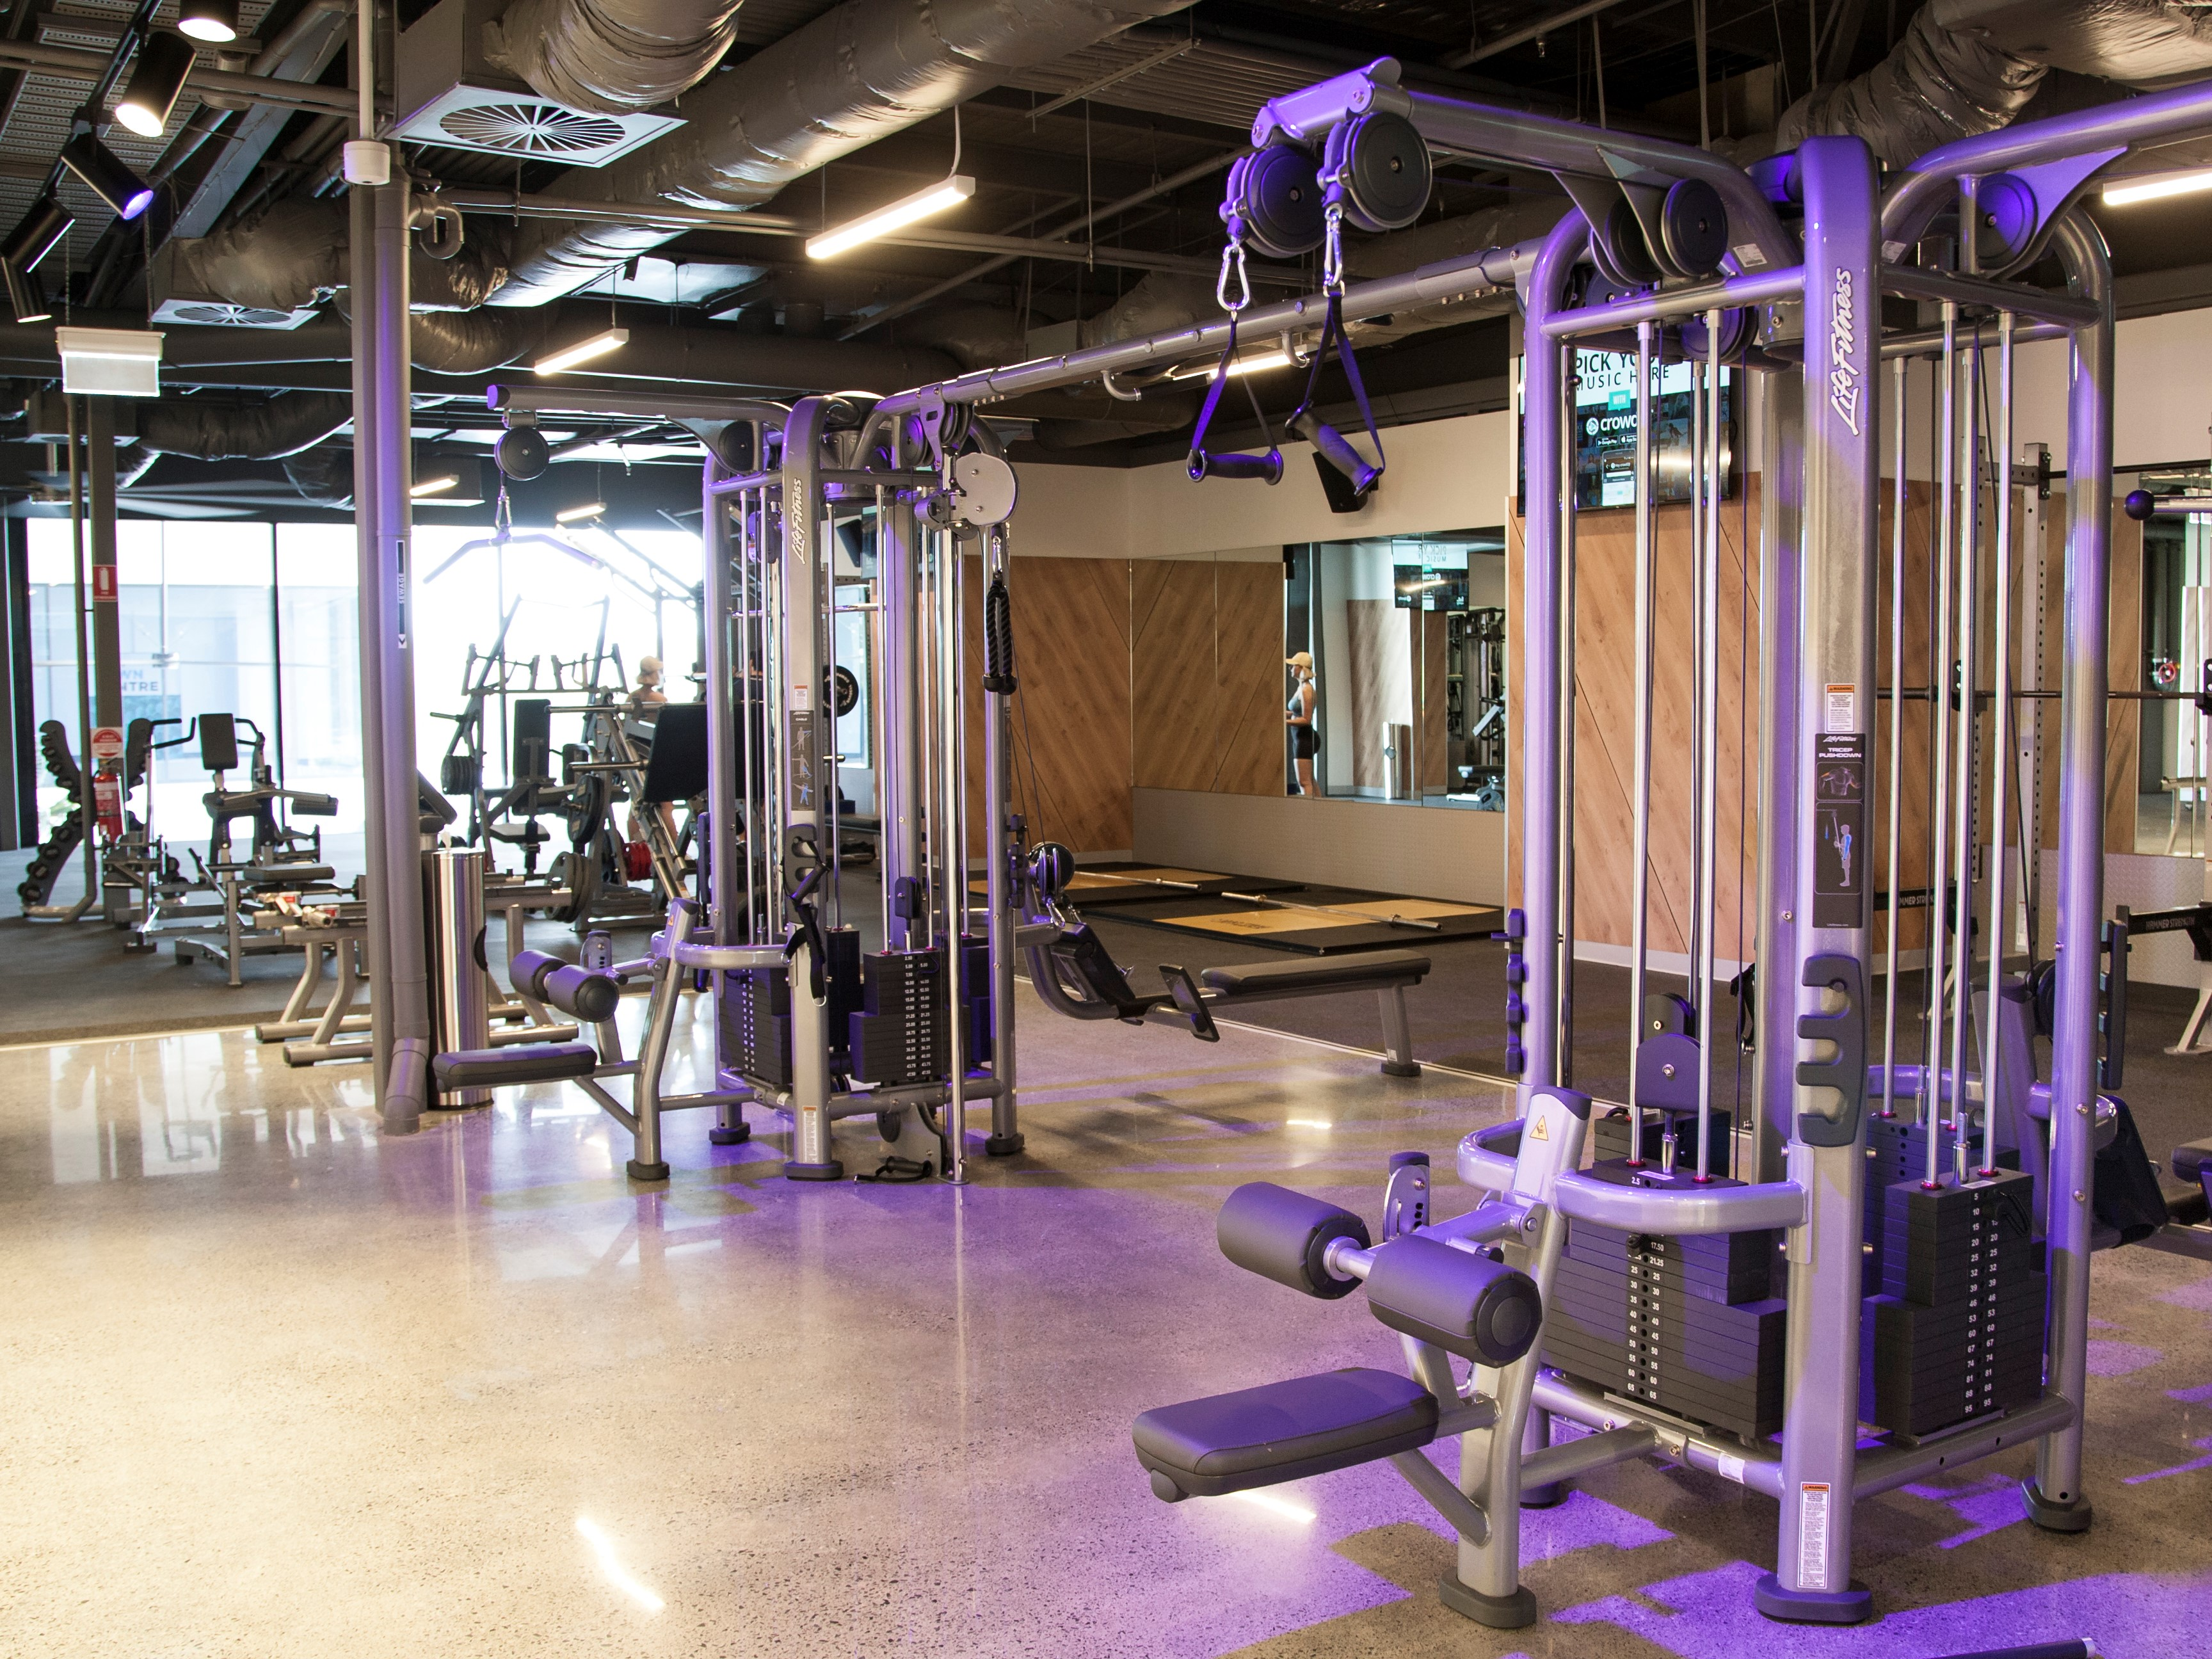 10 Most Reliable Fitness Centers Gym Near Me Updated 2021